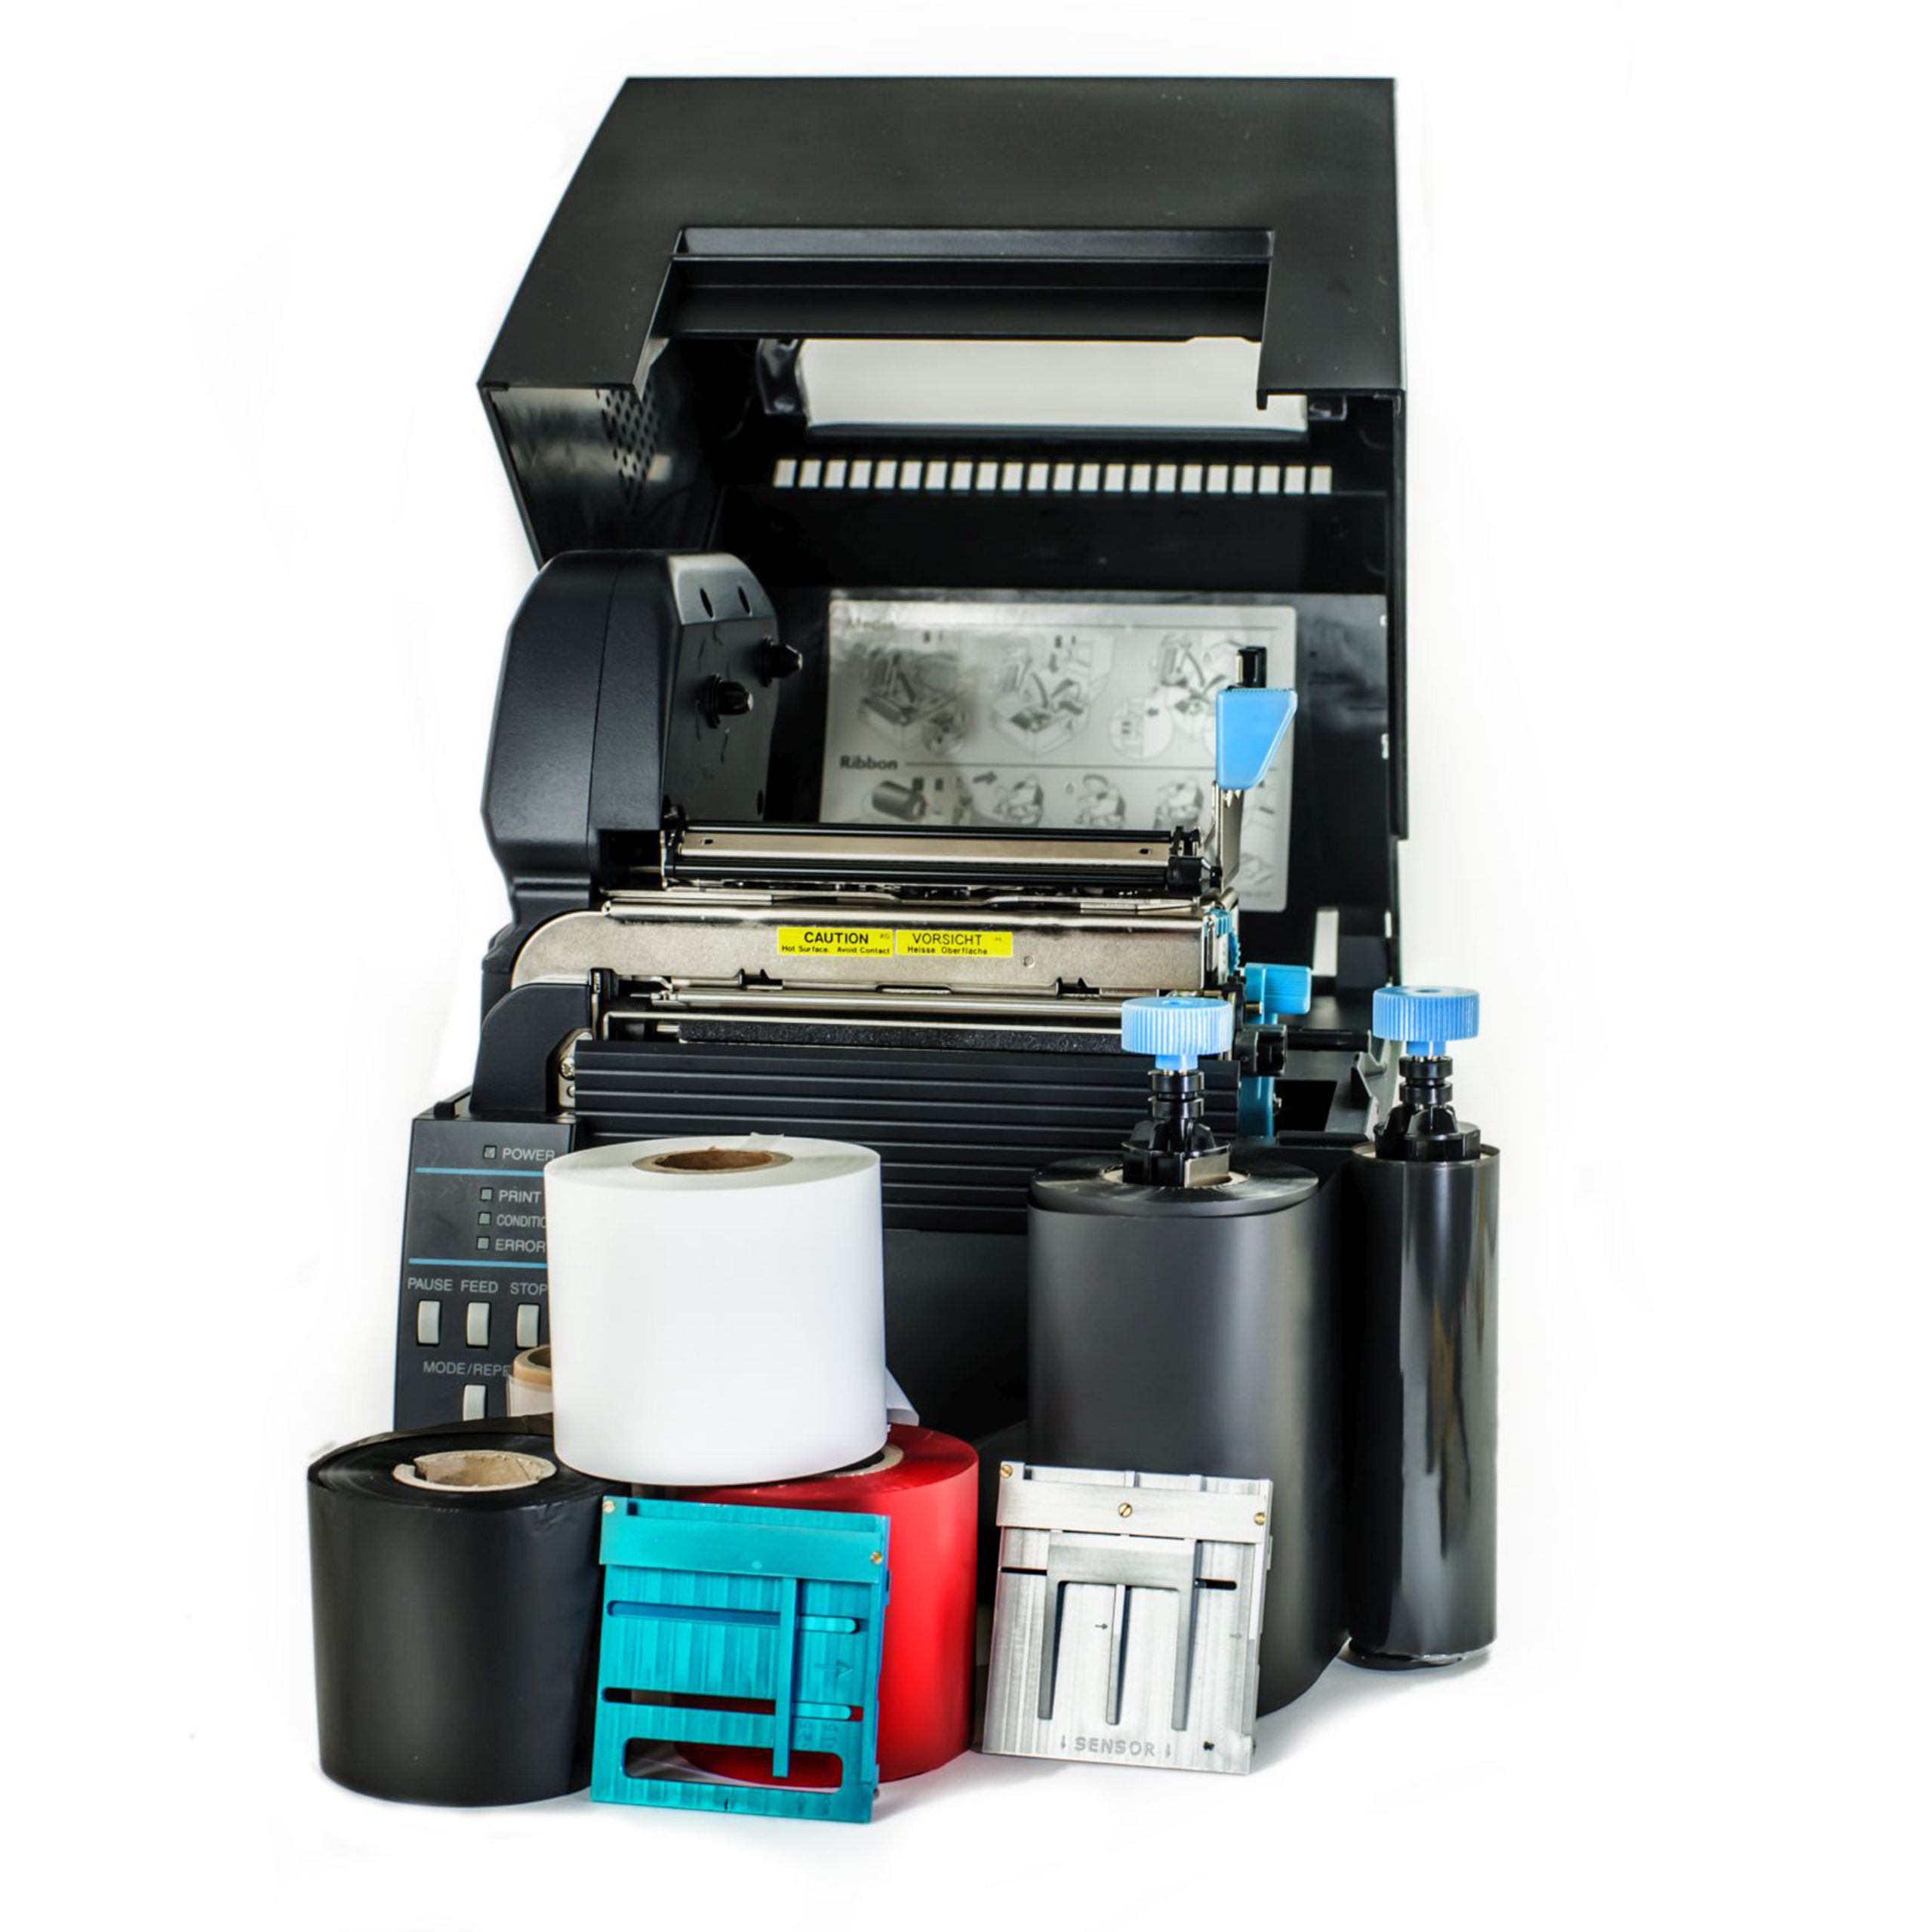 Fox-in-a-Box Thermal Printer Kit